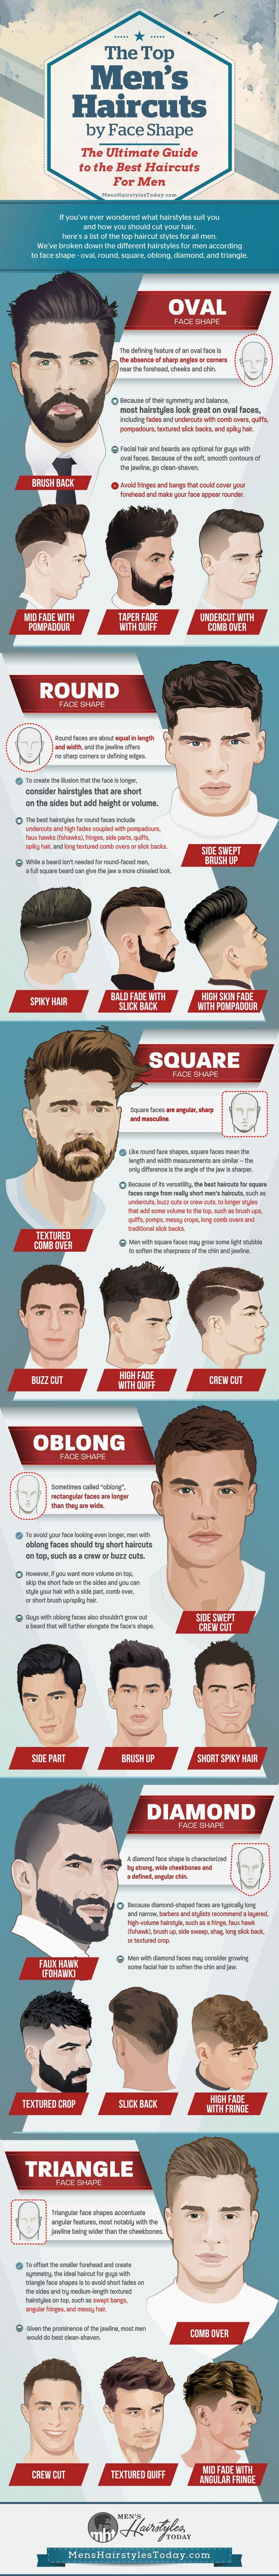 Blonde mens haircuts how do i choose the best hairstyles for me  haircuts hair style